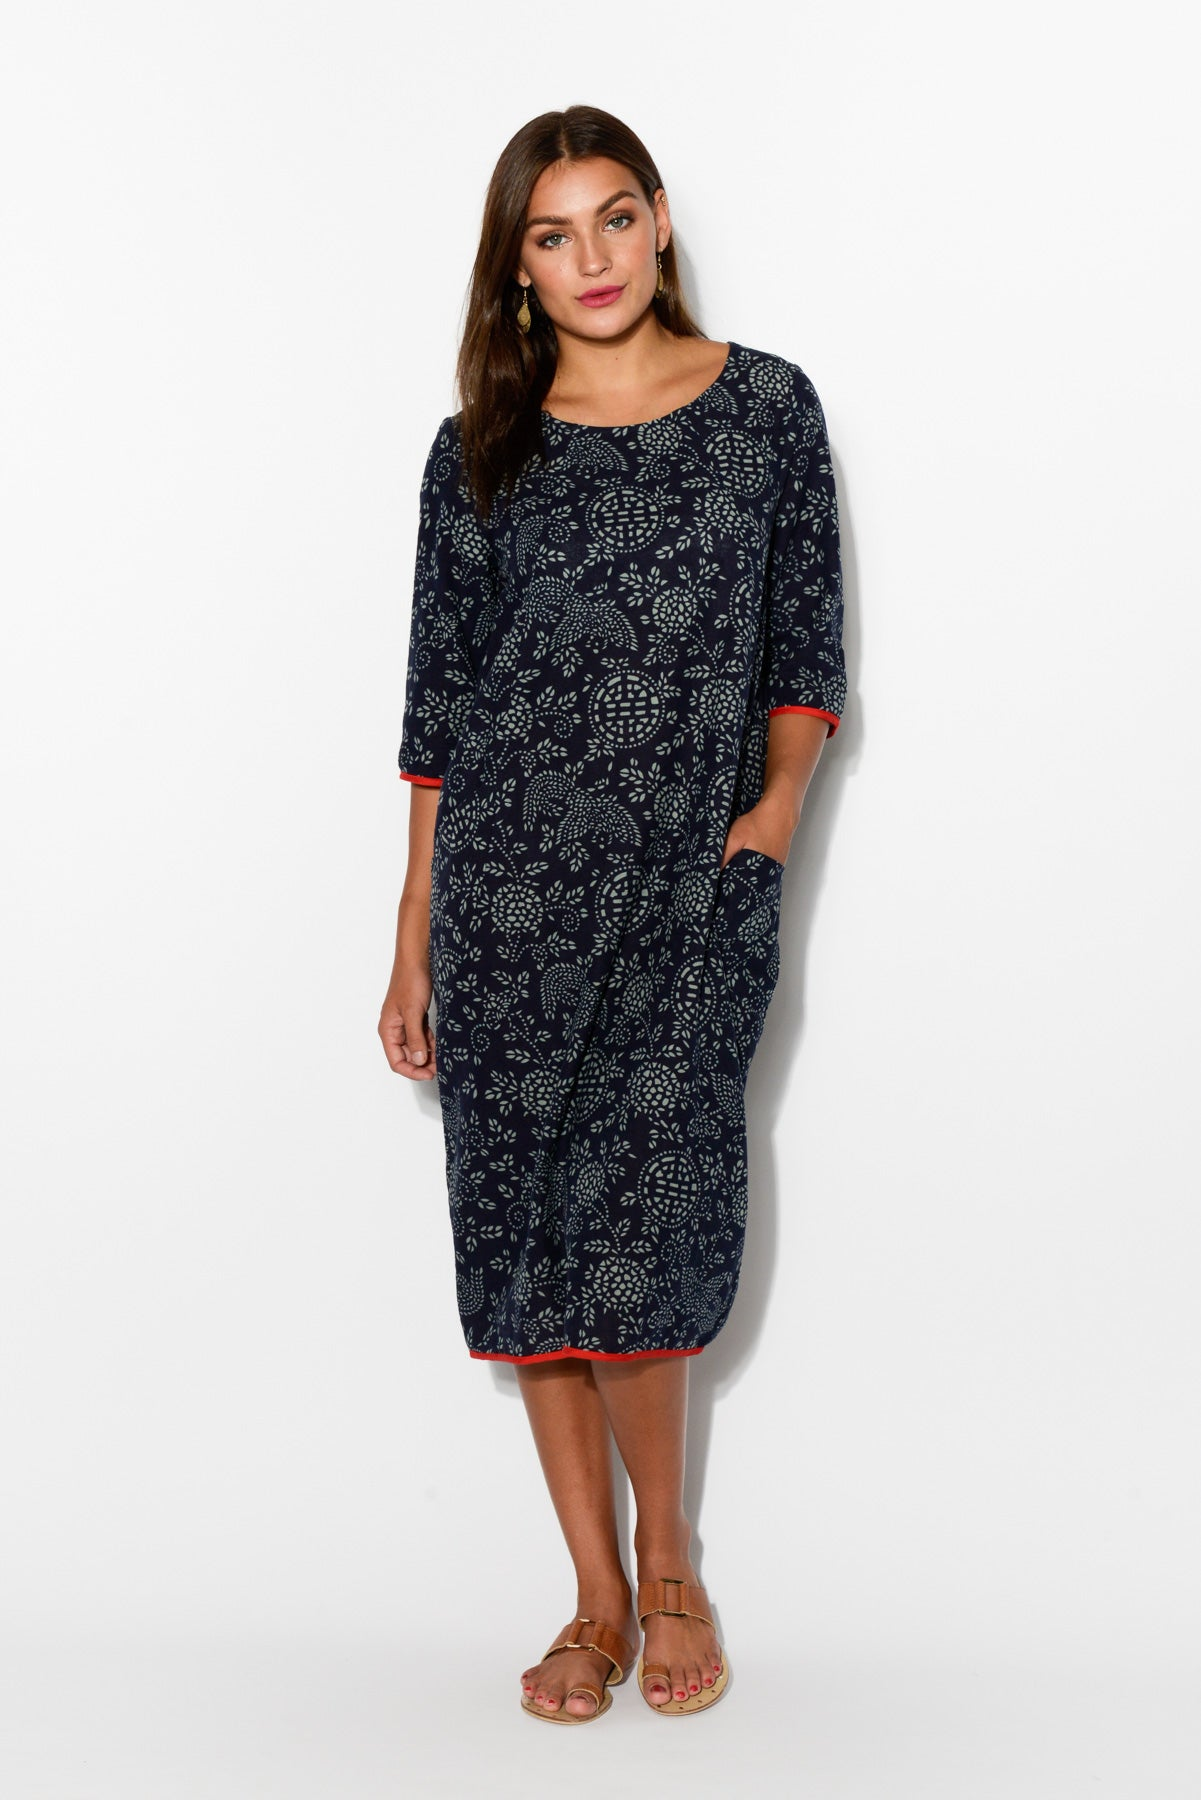 Celia Navy Linen Dress - Blue Bungalow